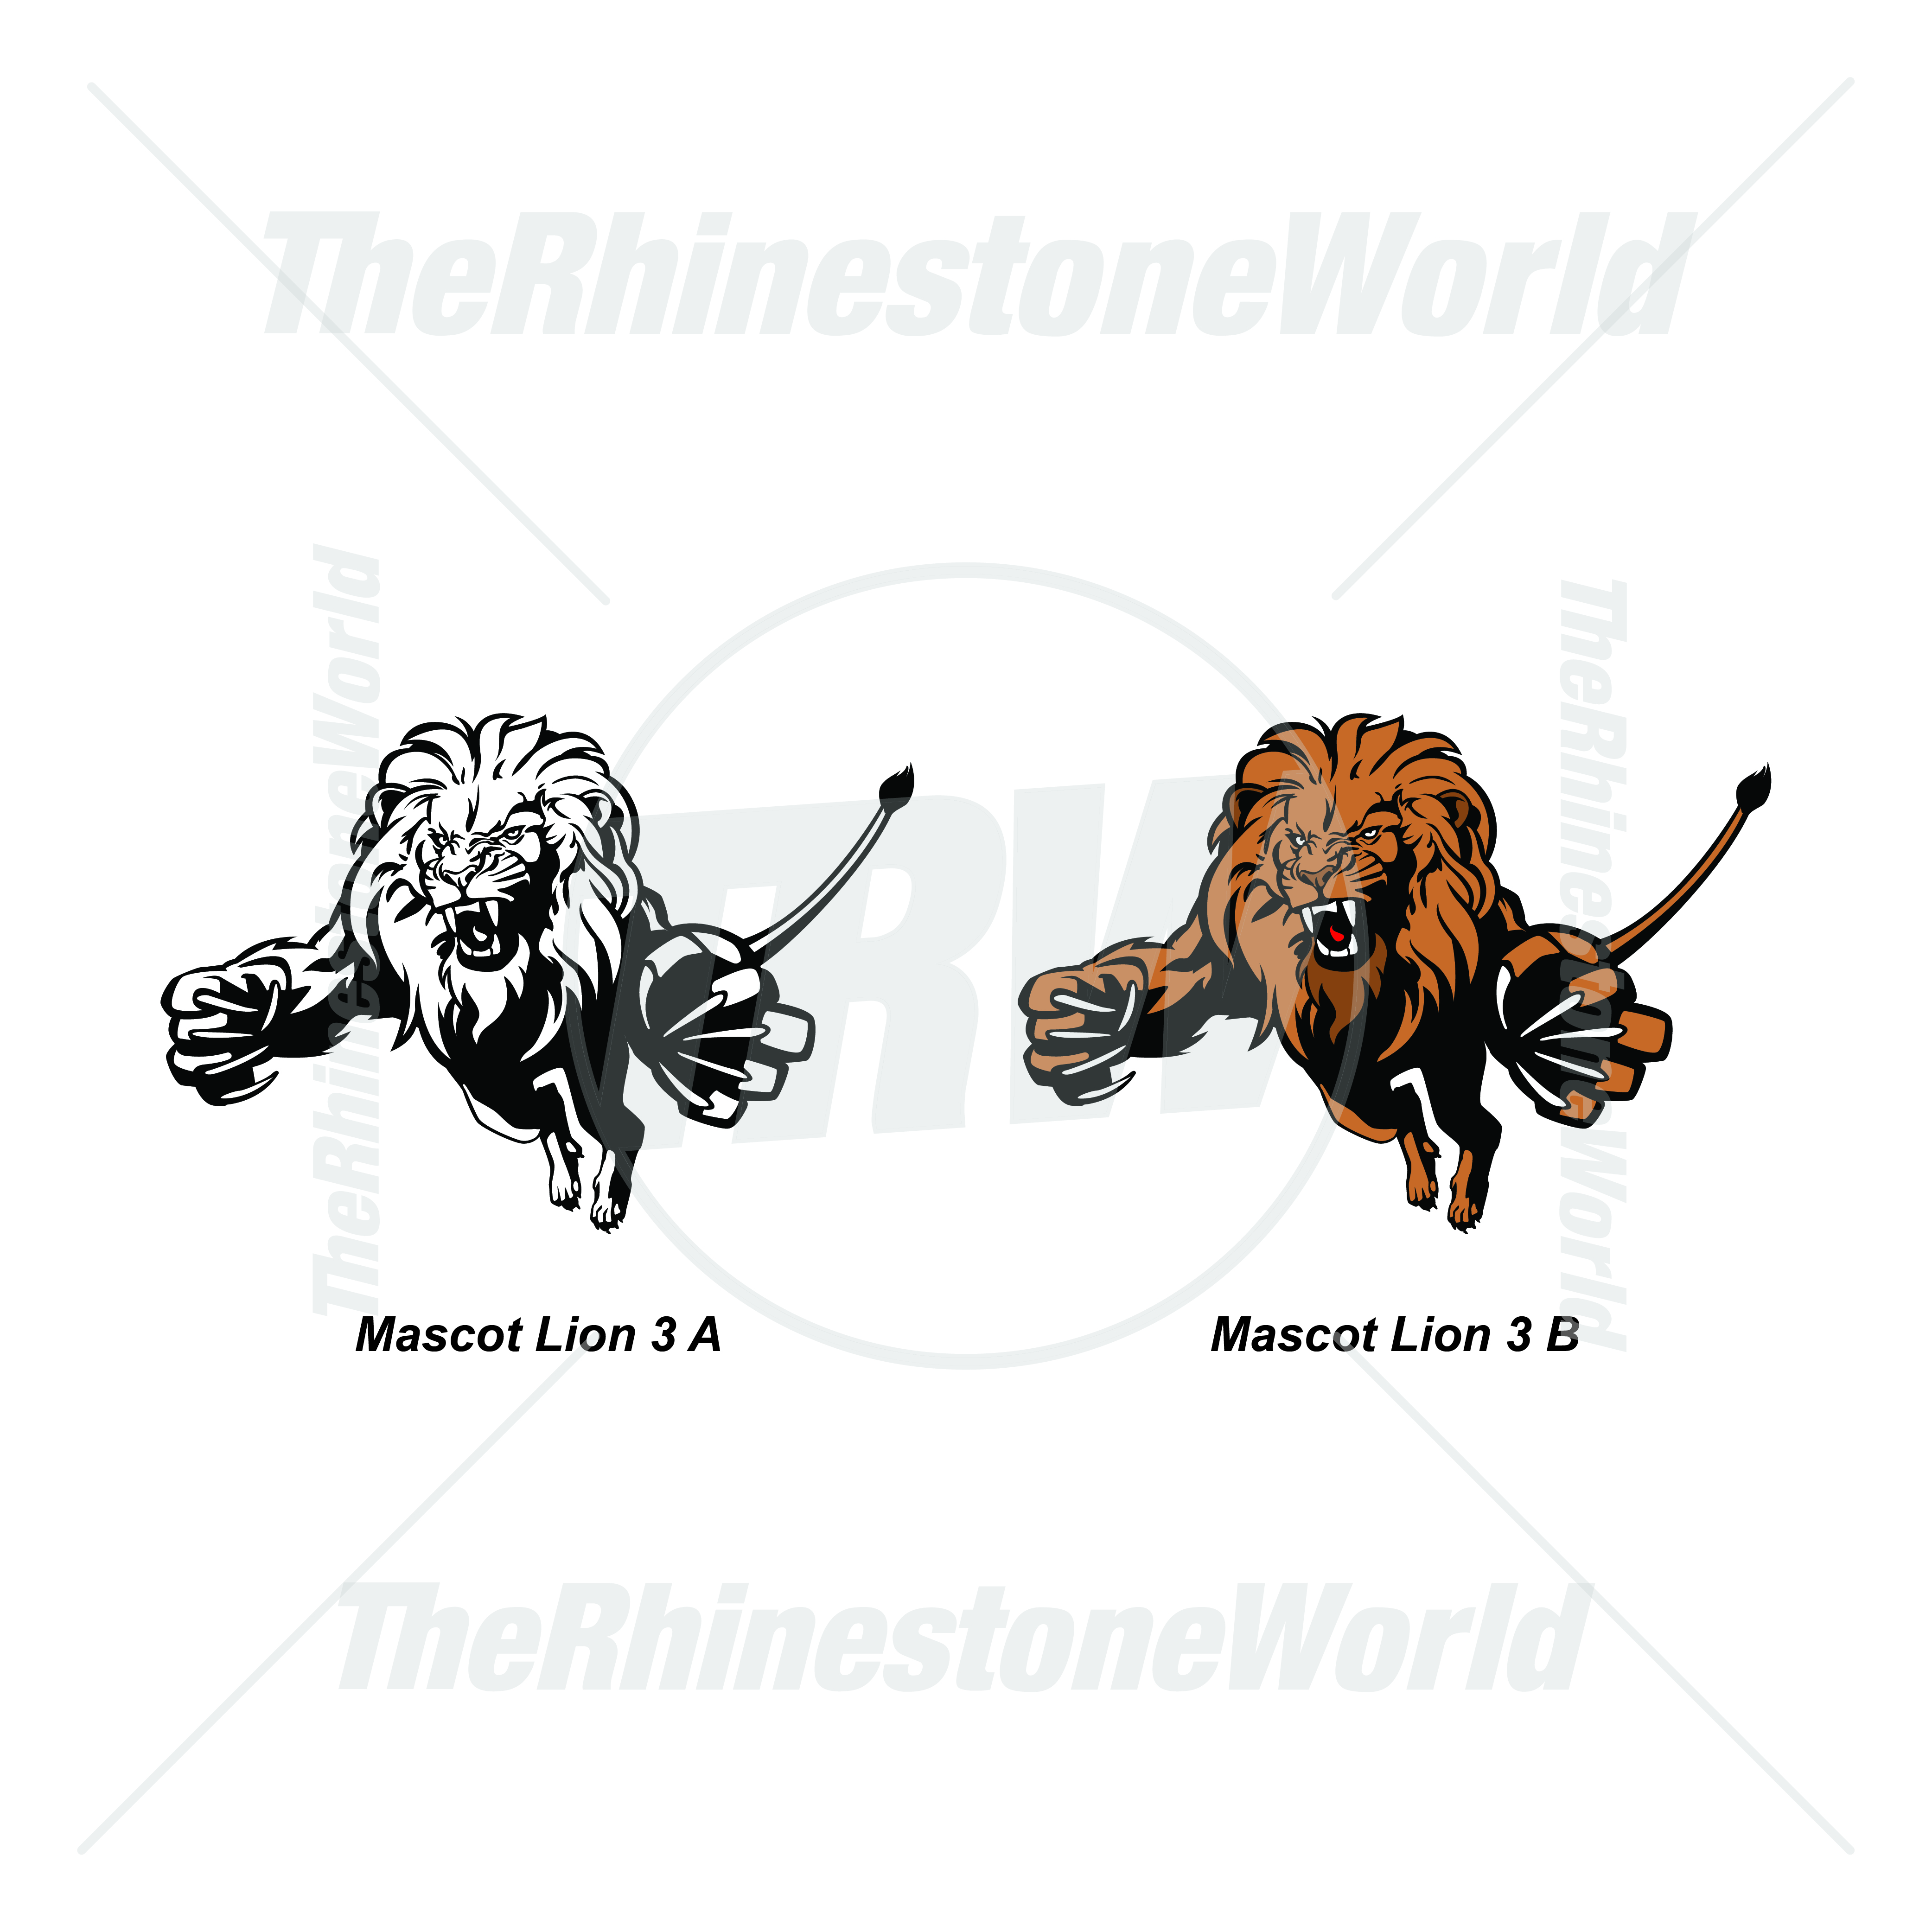 TRW Mascot Lion 3 - Download